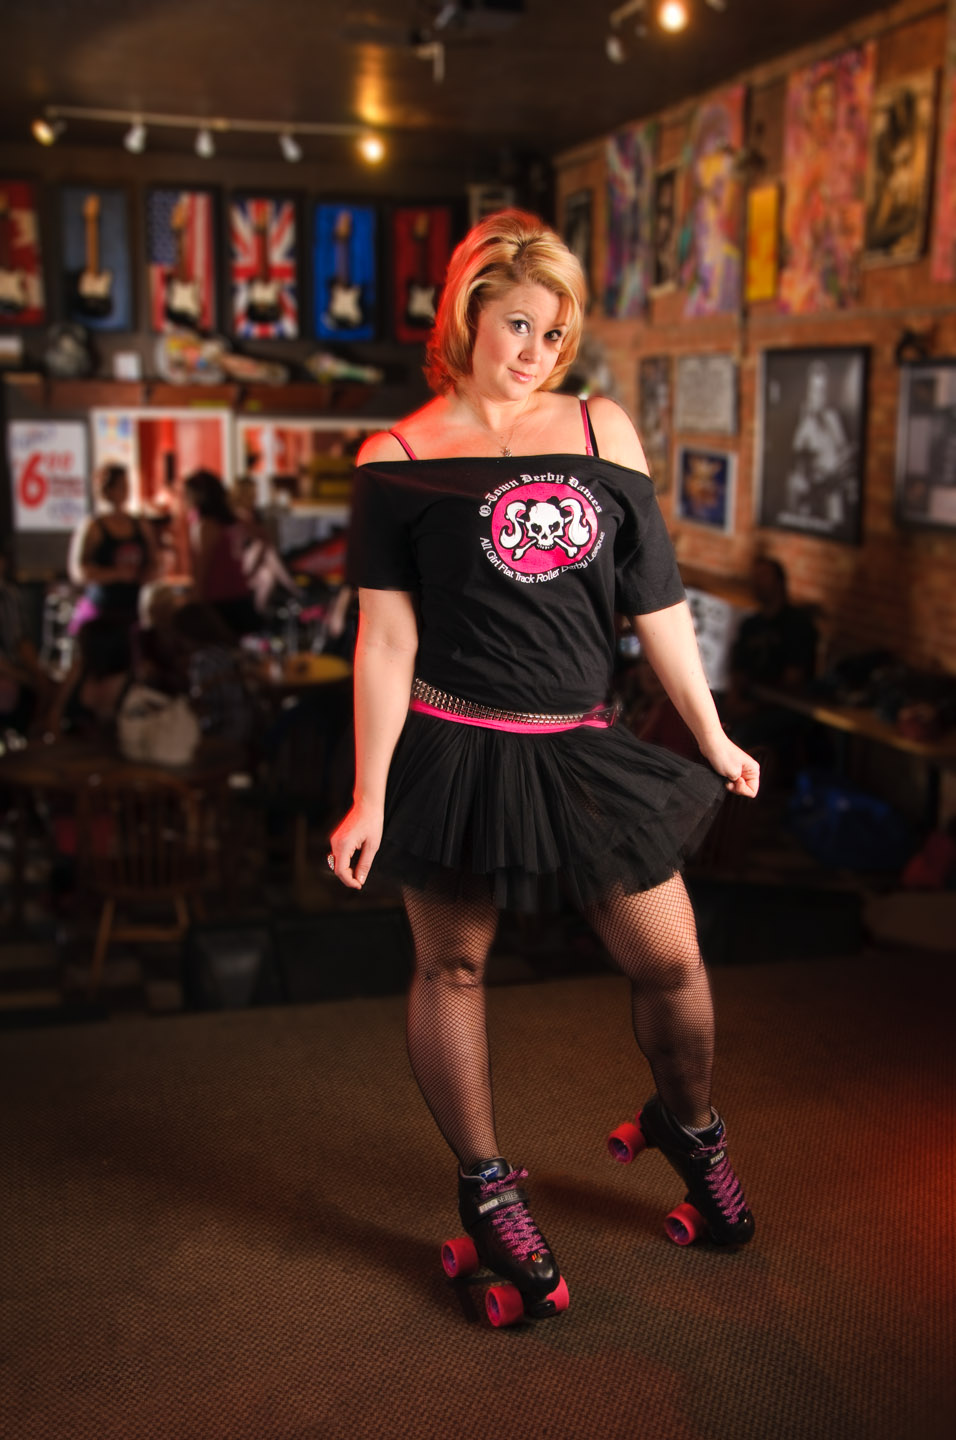 Individual roller derby photos